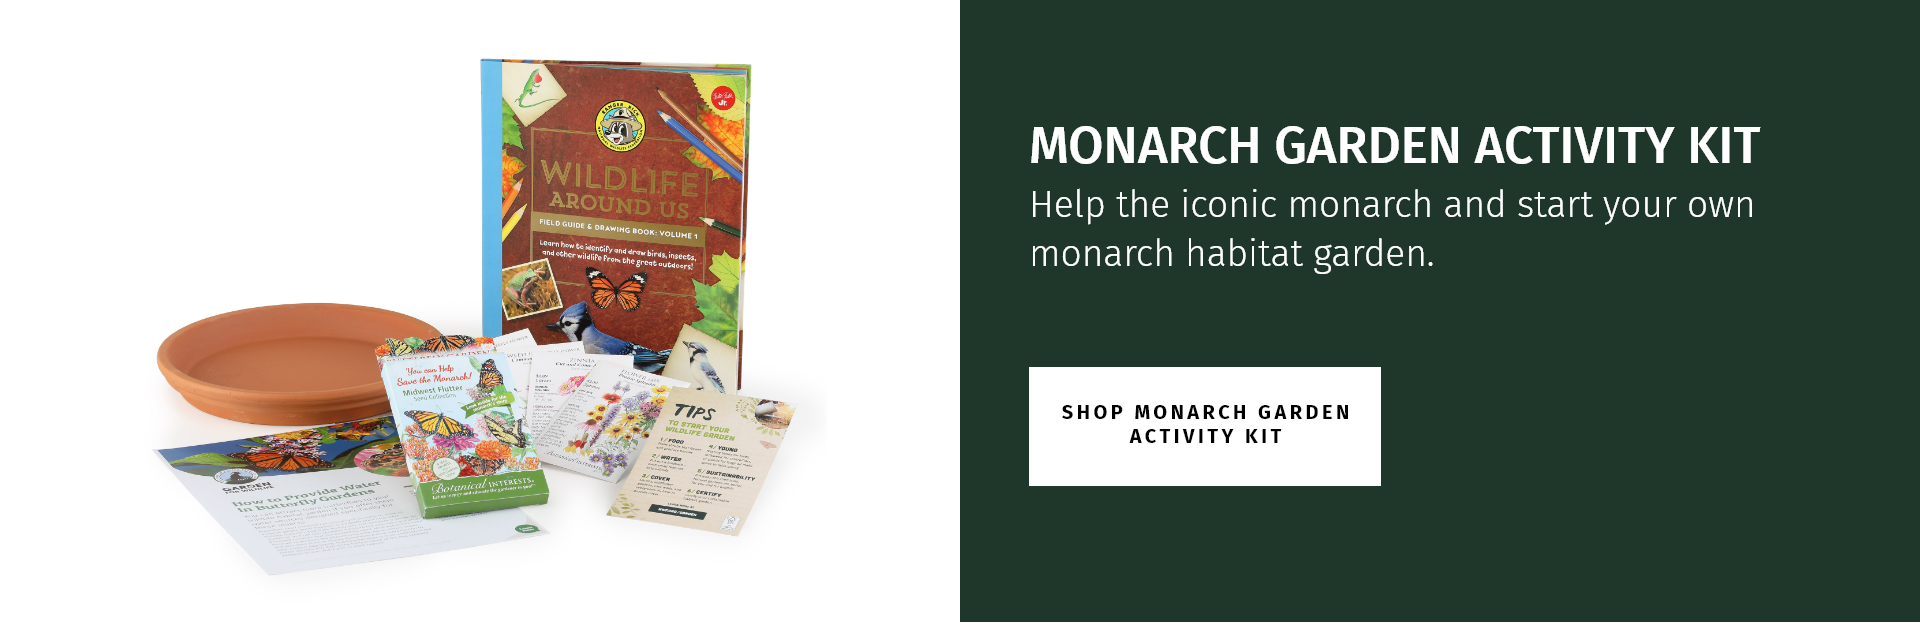 Monarch garden activity kit. help the iconic monarch and start your own monarch habitat garden.